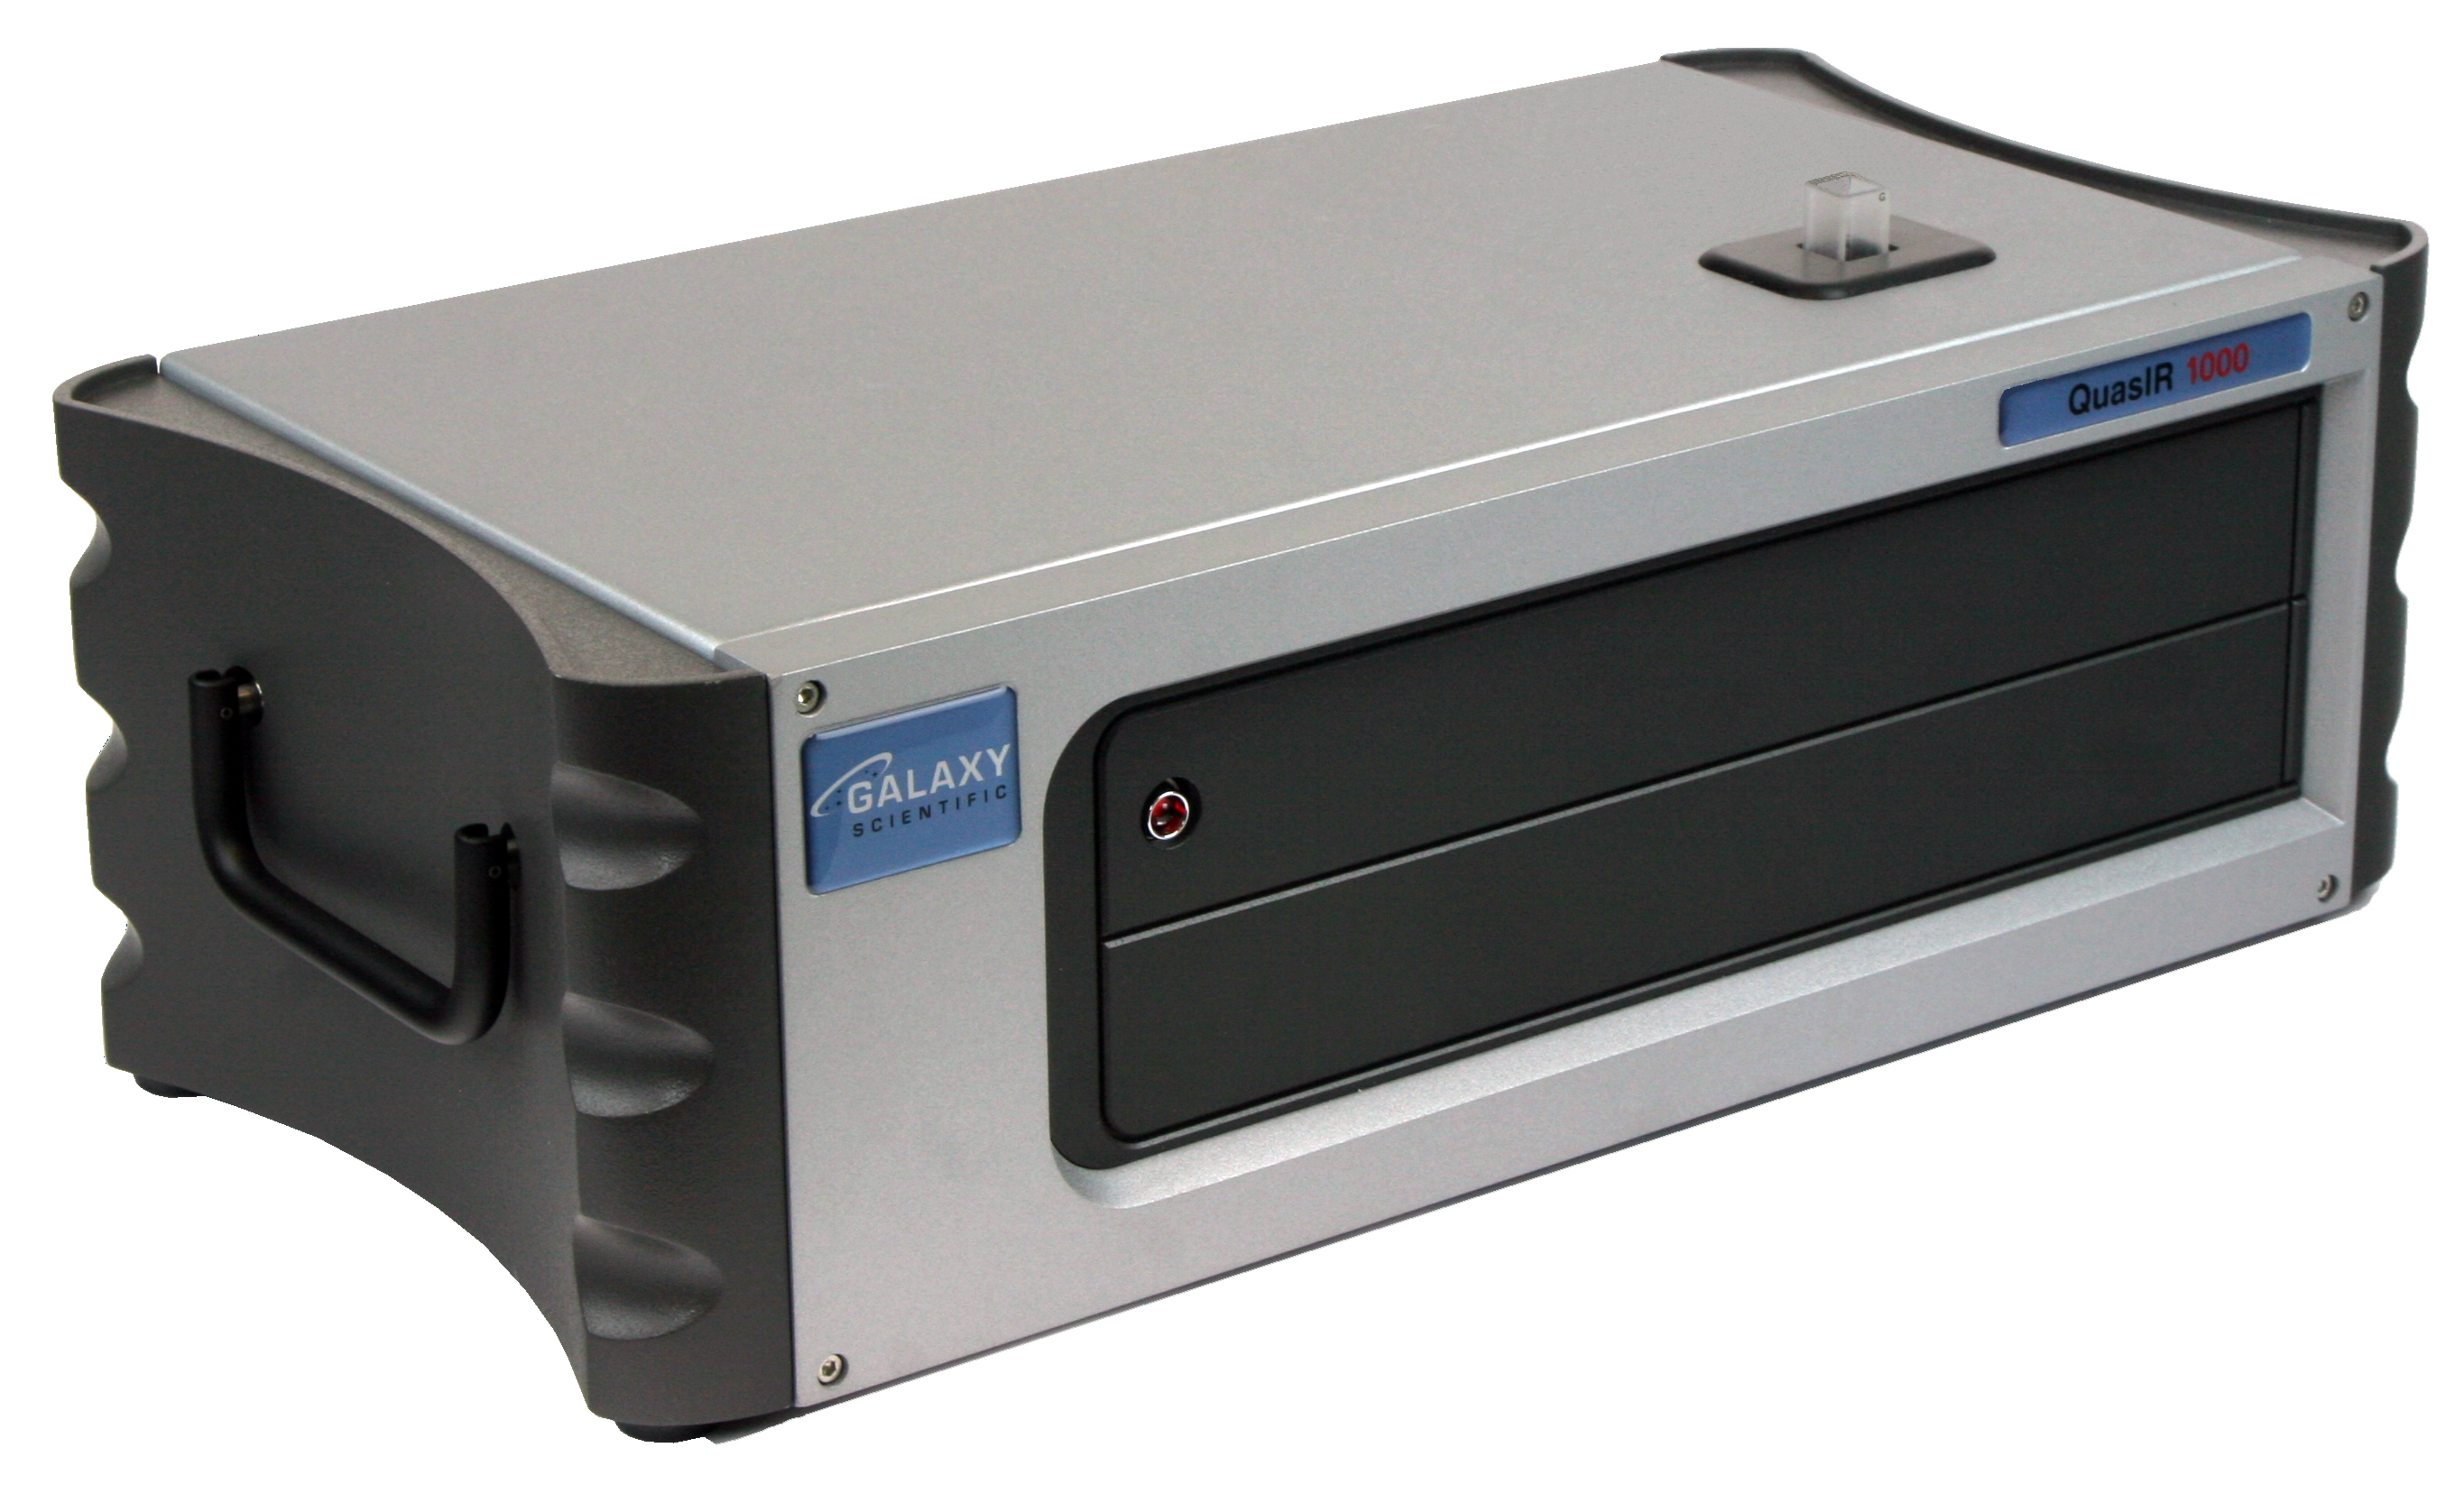 QuasIR™ 1000 Transmission FT-NIR Spectrometer Image